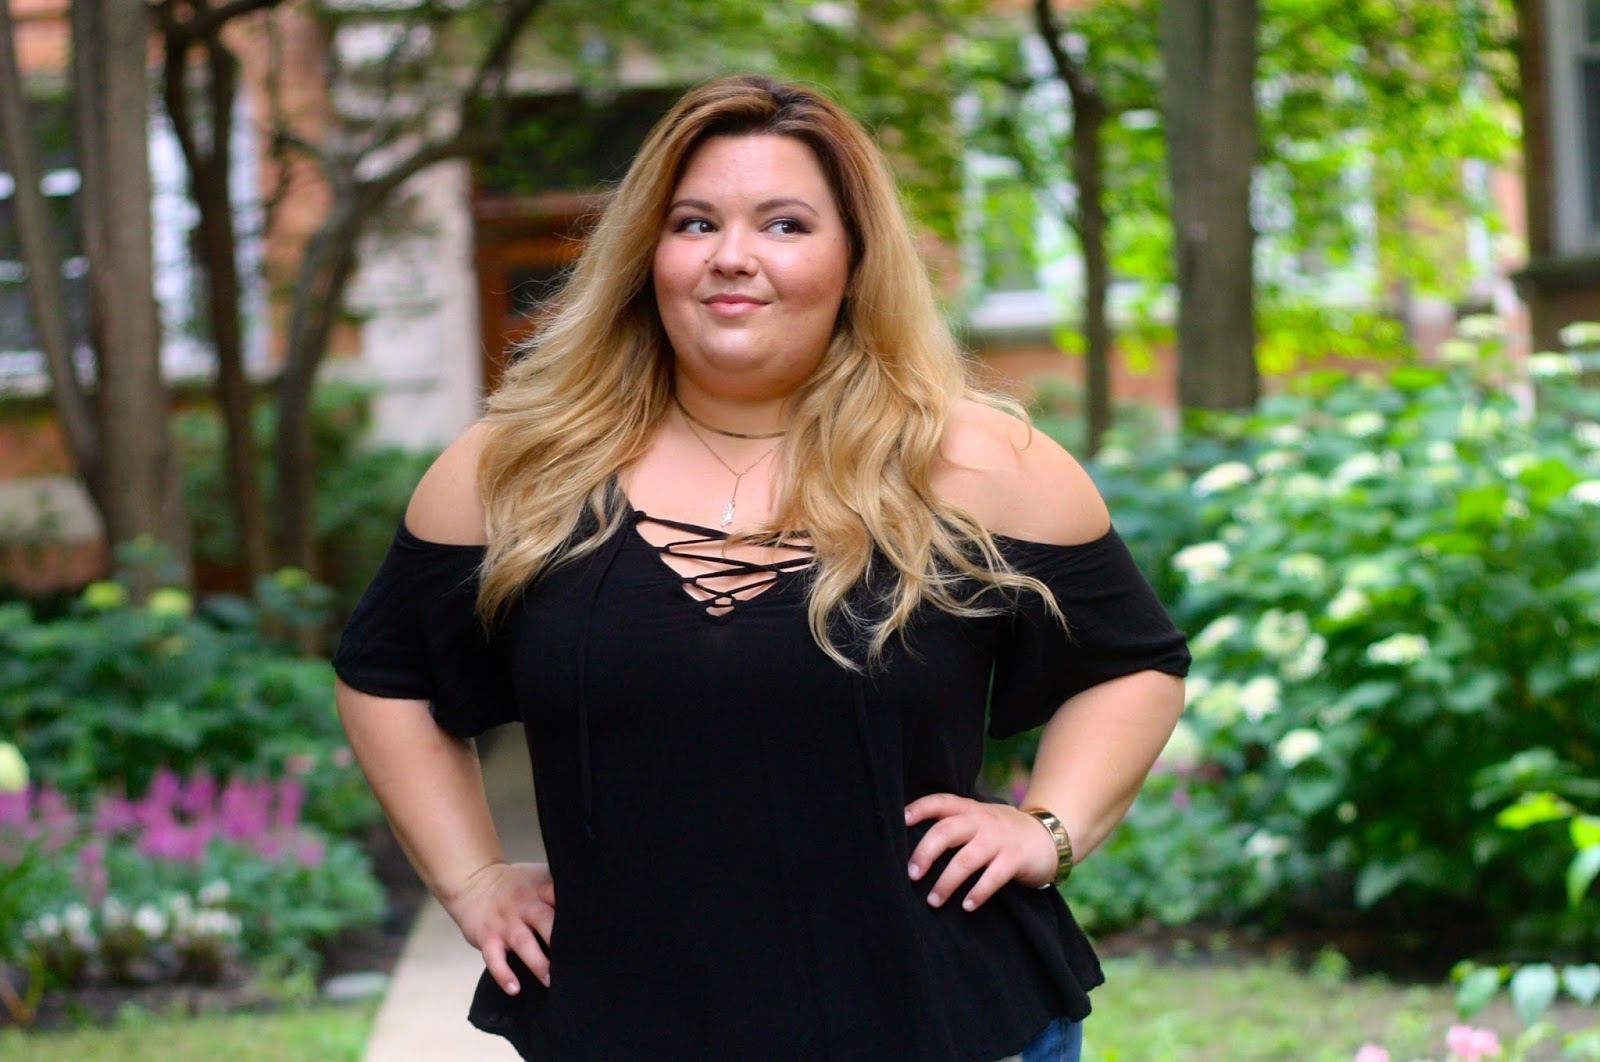 lace up criss cross blouse plus size, natalie craig, fashion blogger, plus size fashion blogger, chicago blogger, natalie in the city, psfashion, full figure, fatshion, plus size denim shorts, franco sarto lace up sandals, chocker necklace duo